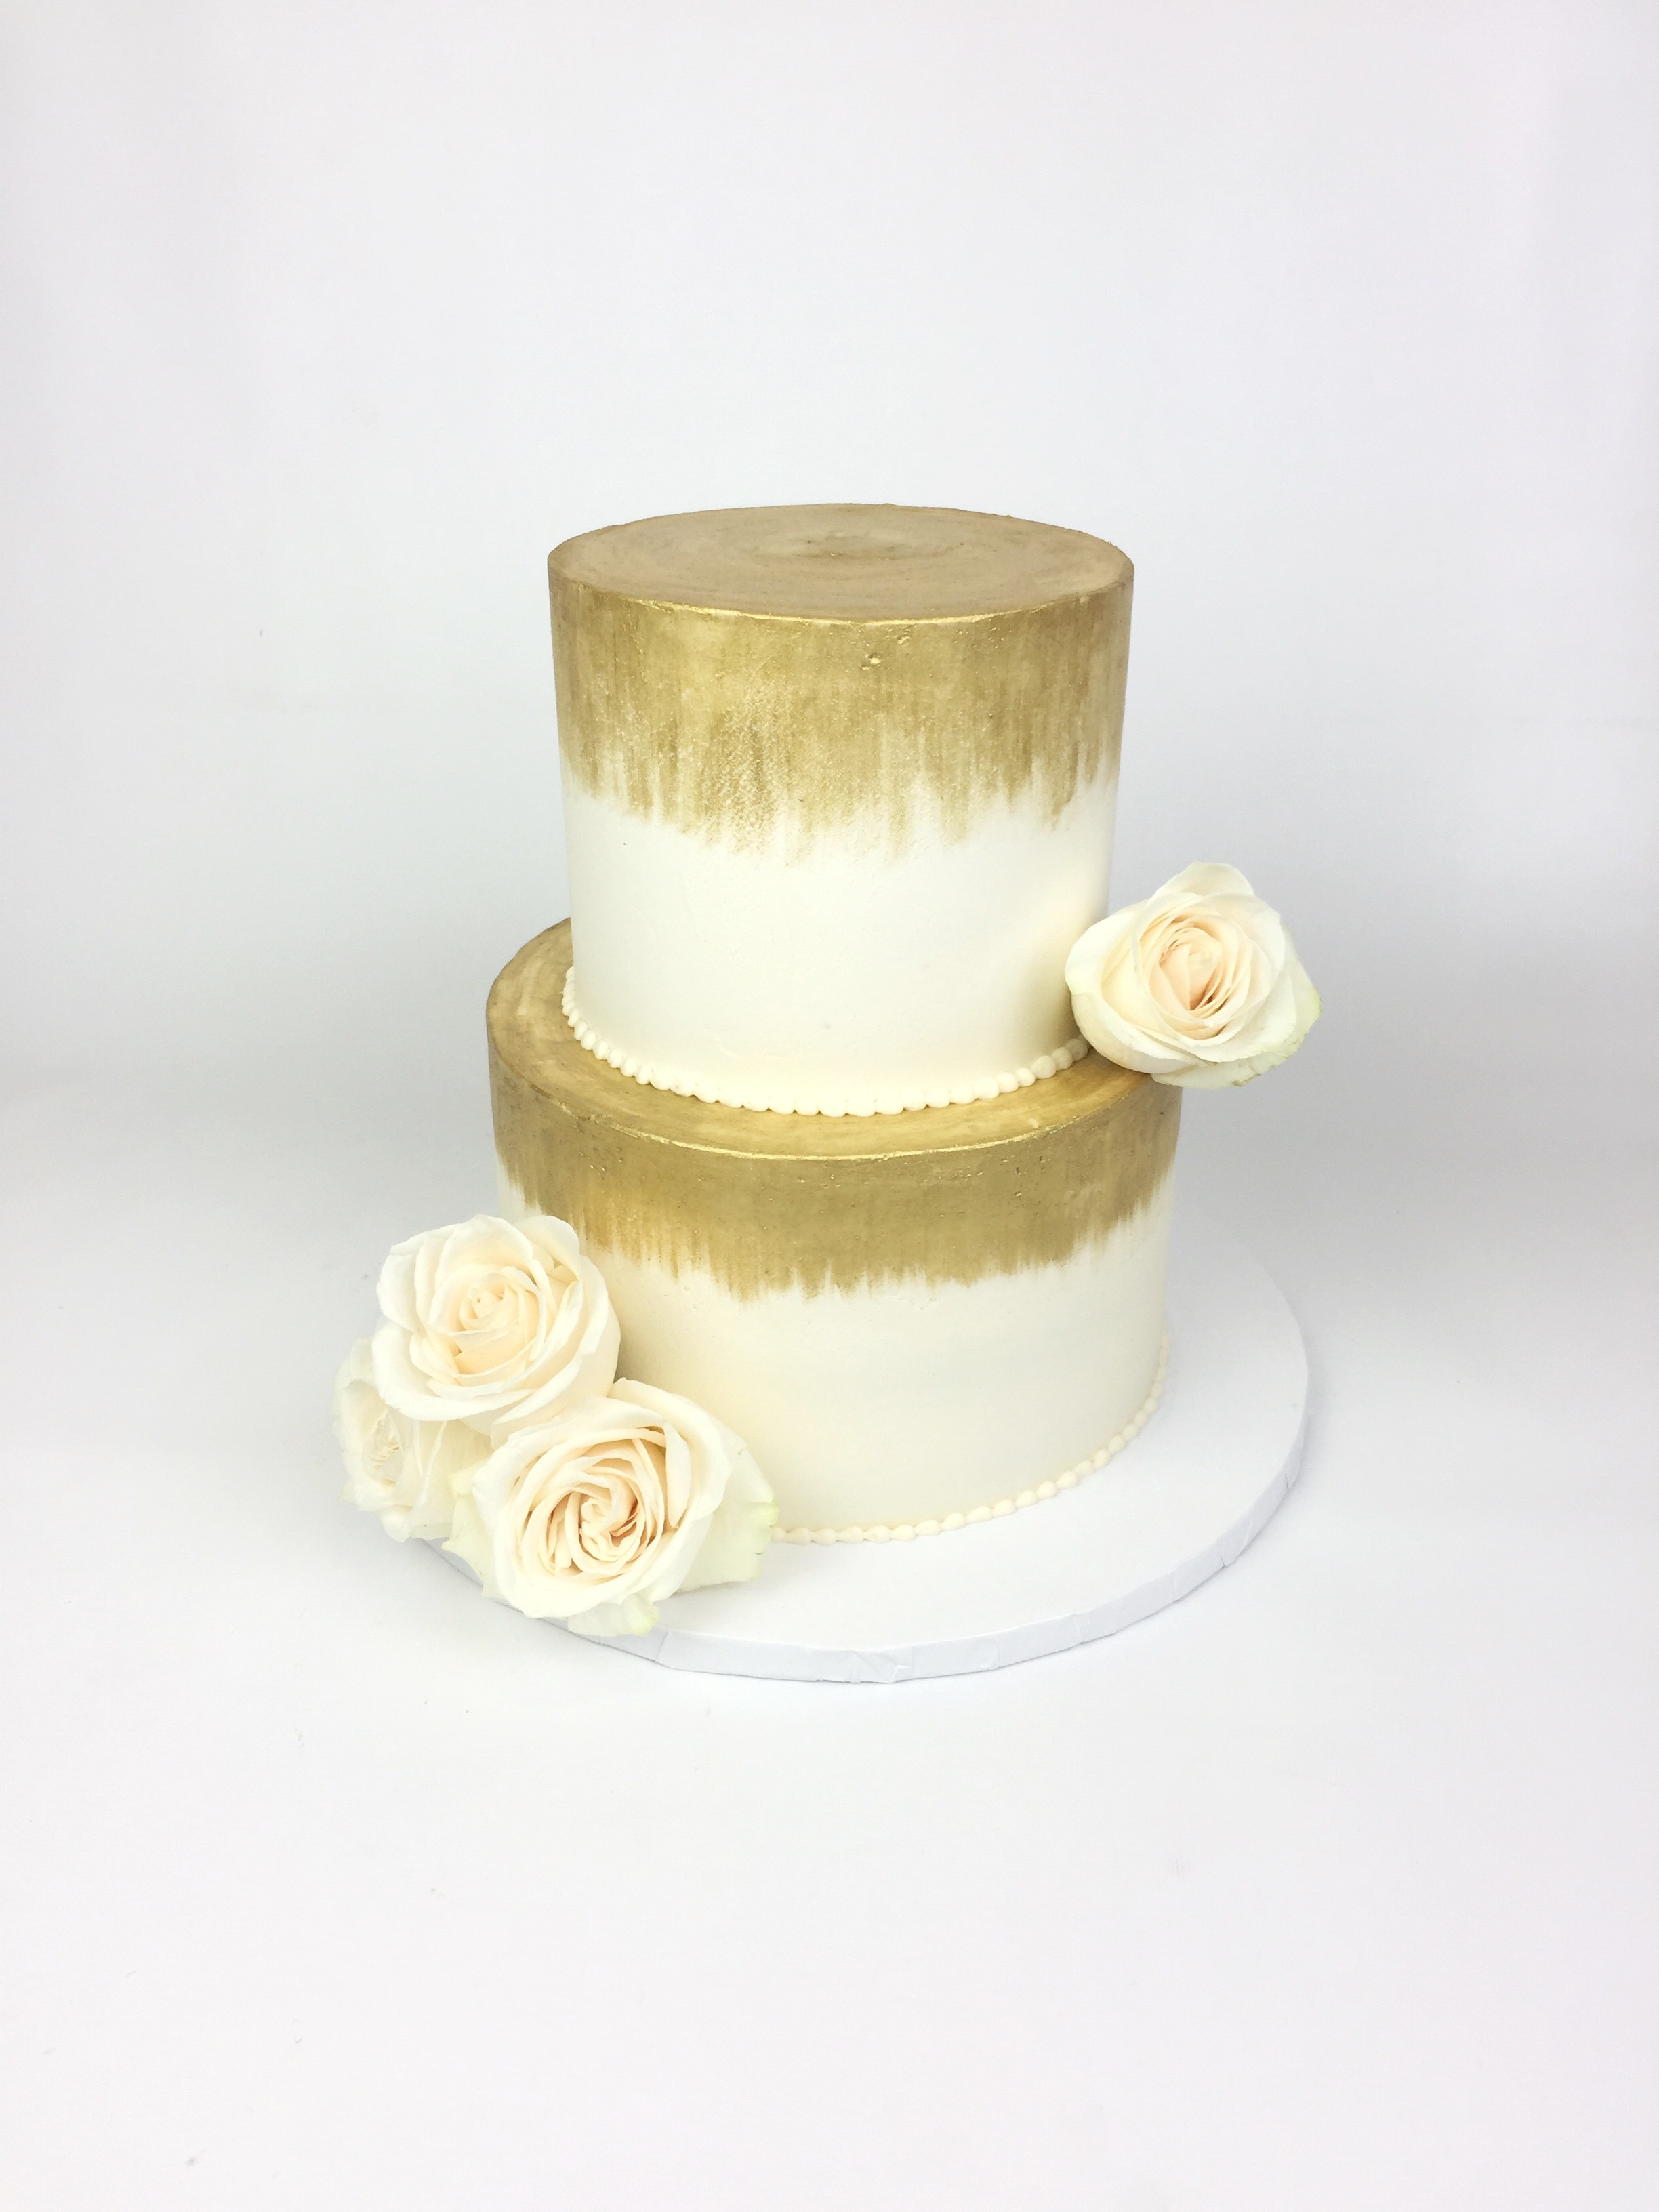 White & Gold Cake with White Roses — Rach Makes Cakes